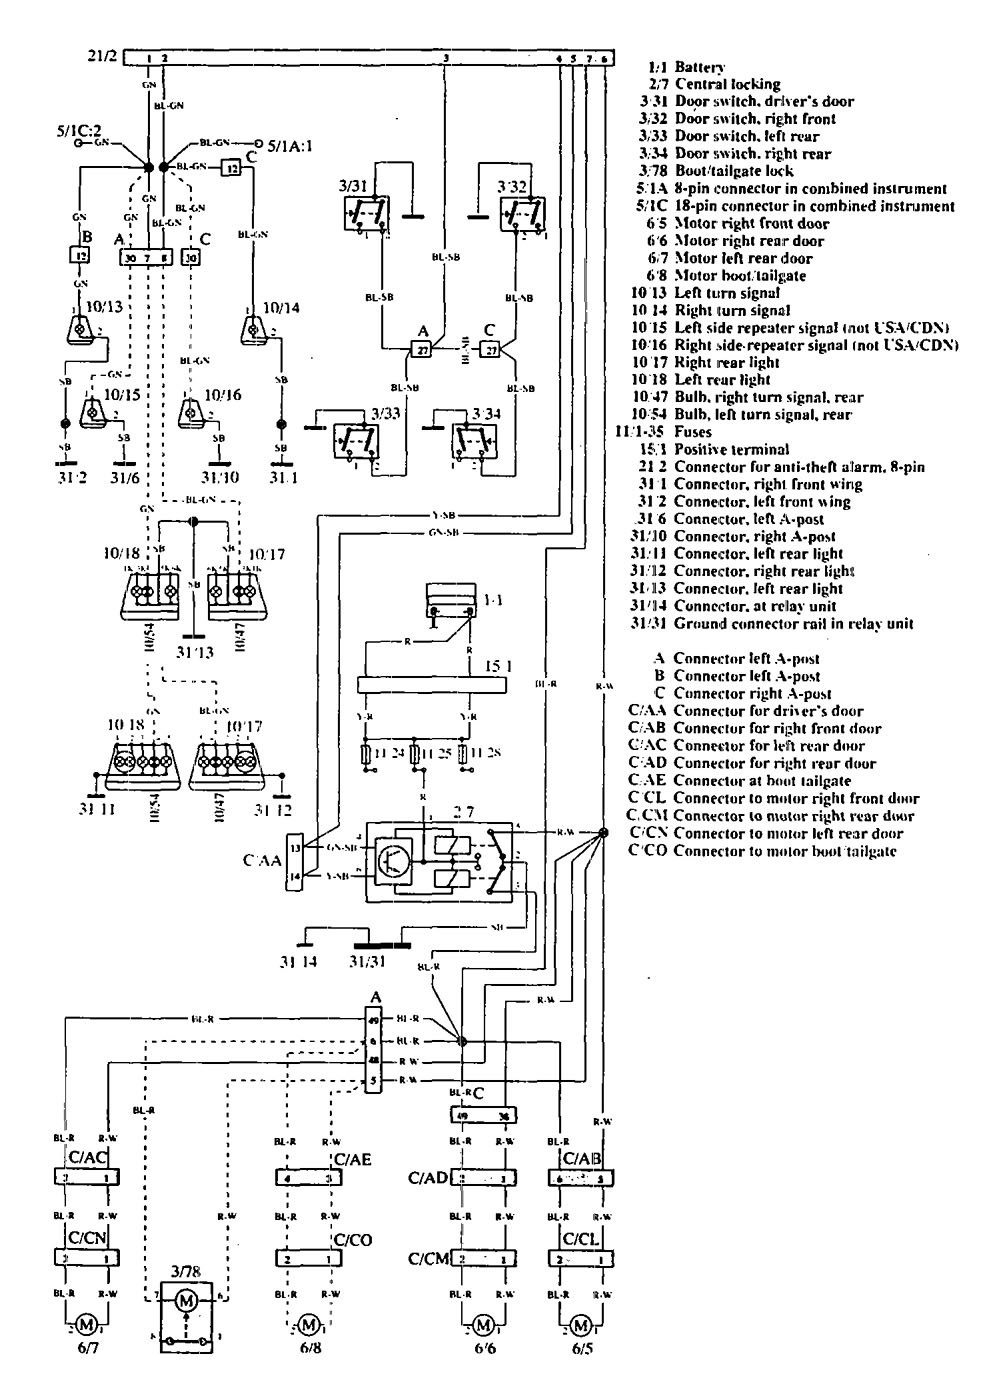 1992 Volvo 960 Wiring Diagram : 29 Wiring Diagram Images